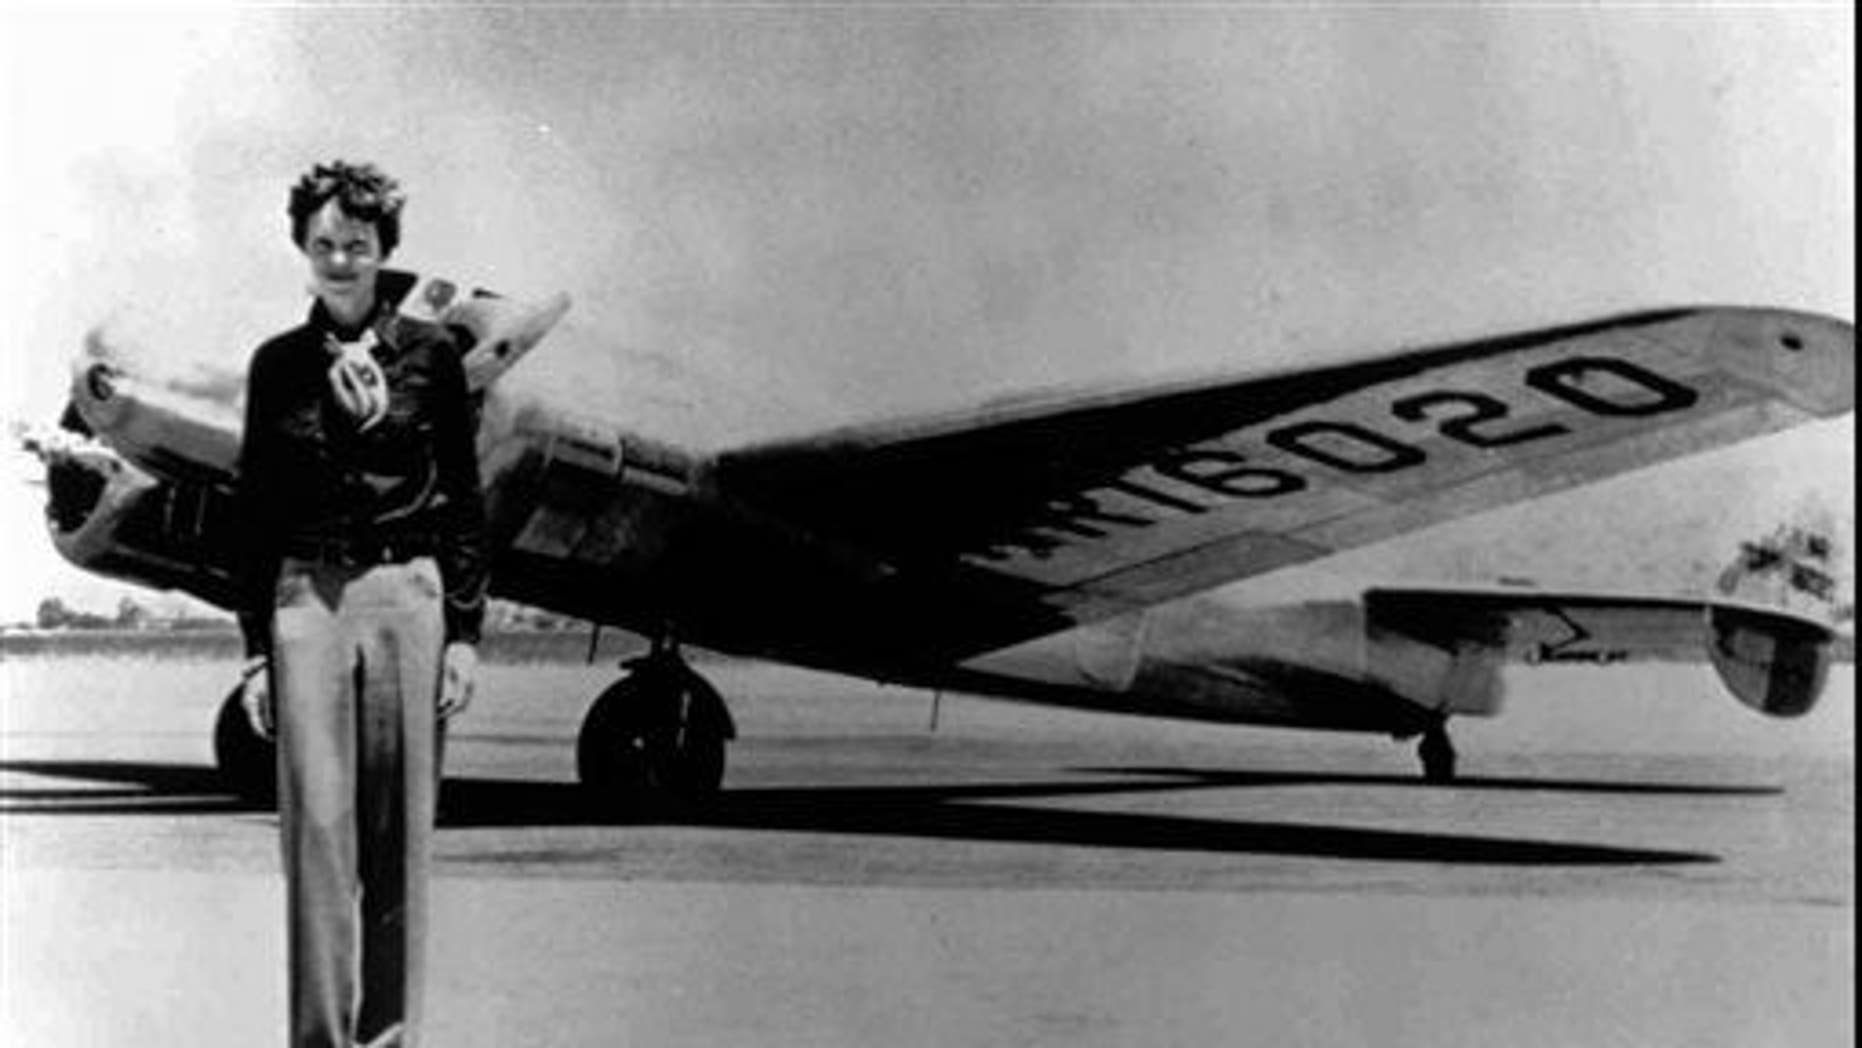 In this undated file photo, Amelia Earhart stands next to a Lockheed Electra 10E, before her last flight in 1937 from Oakland, Calif., bound for Honolulu on the first leg of her record-setting attempt to circumnavigate the world westward along the Equator.